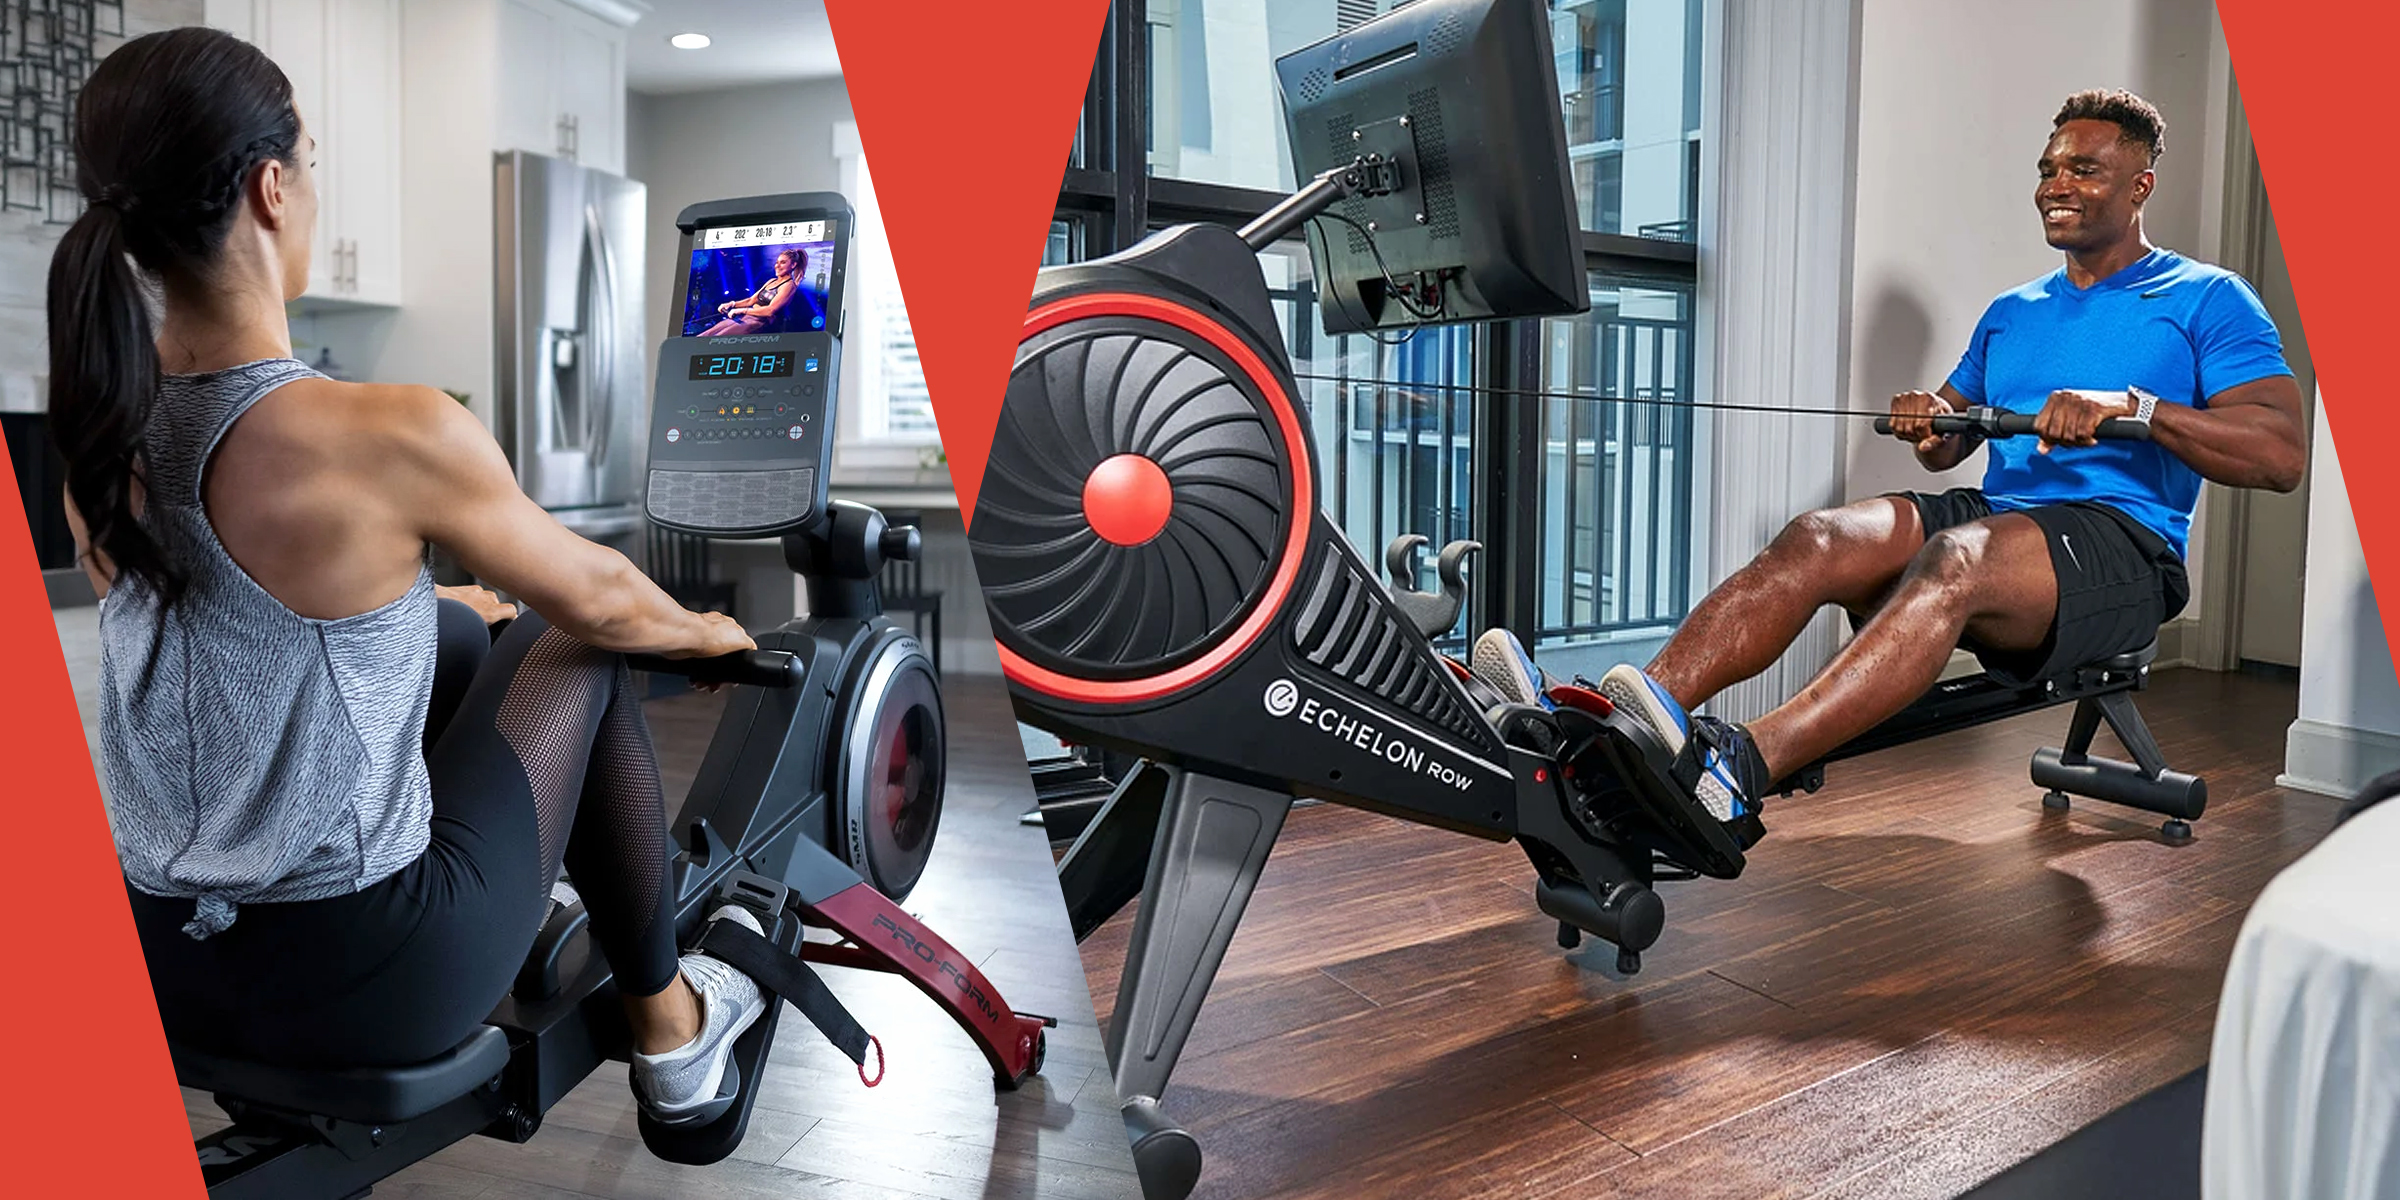 10 Best Affordable Exercise Bikes For Home Workouts In 2021